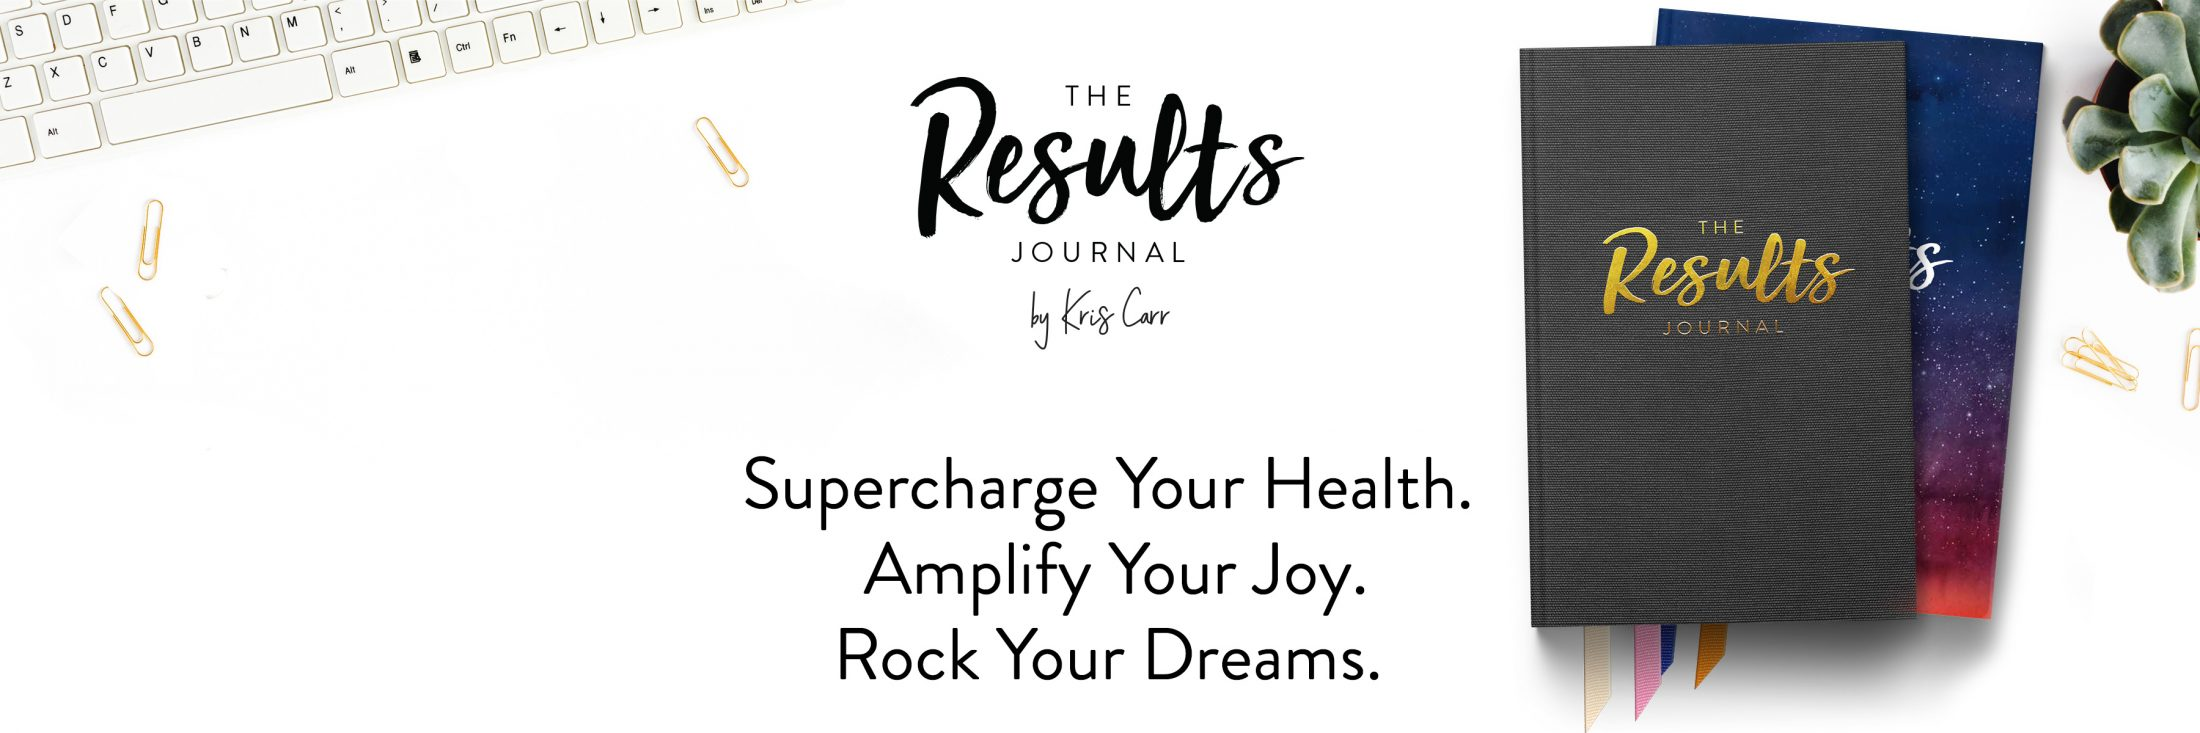 the results journal by kris carr